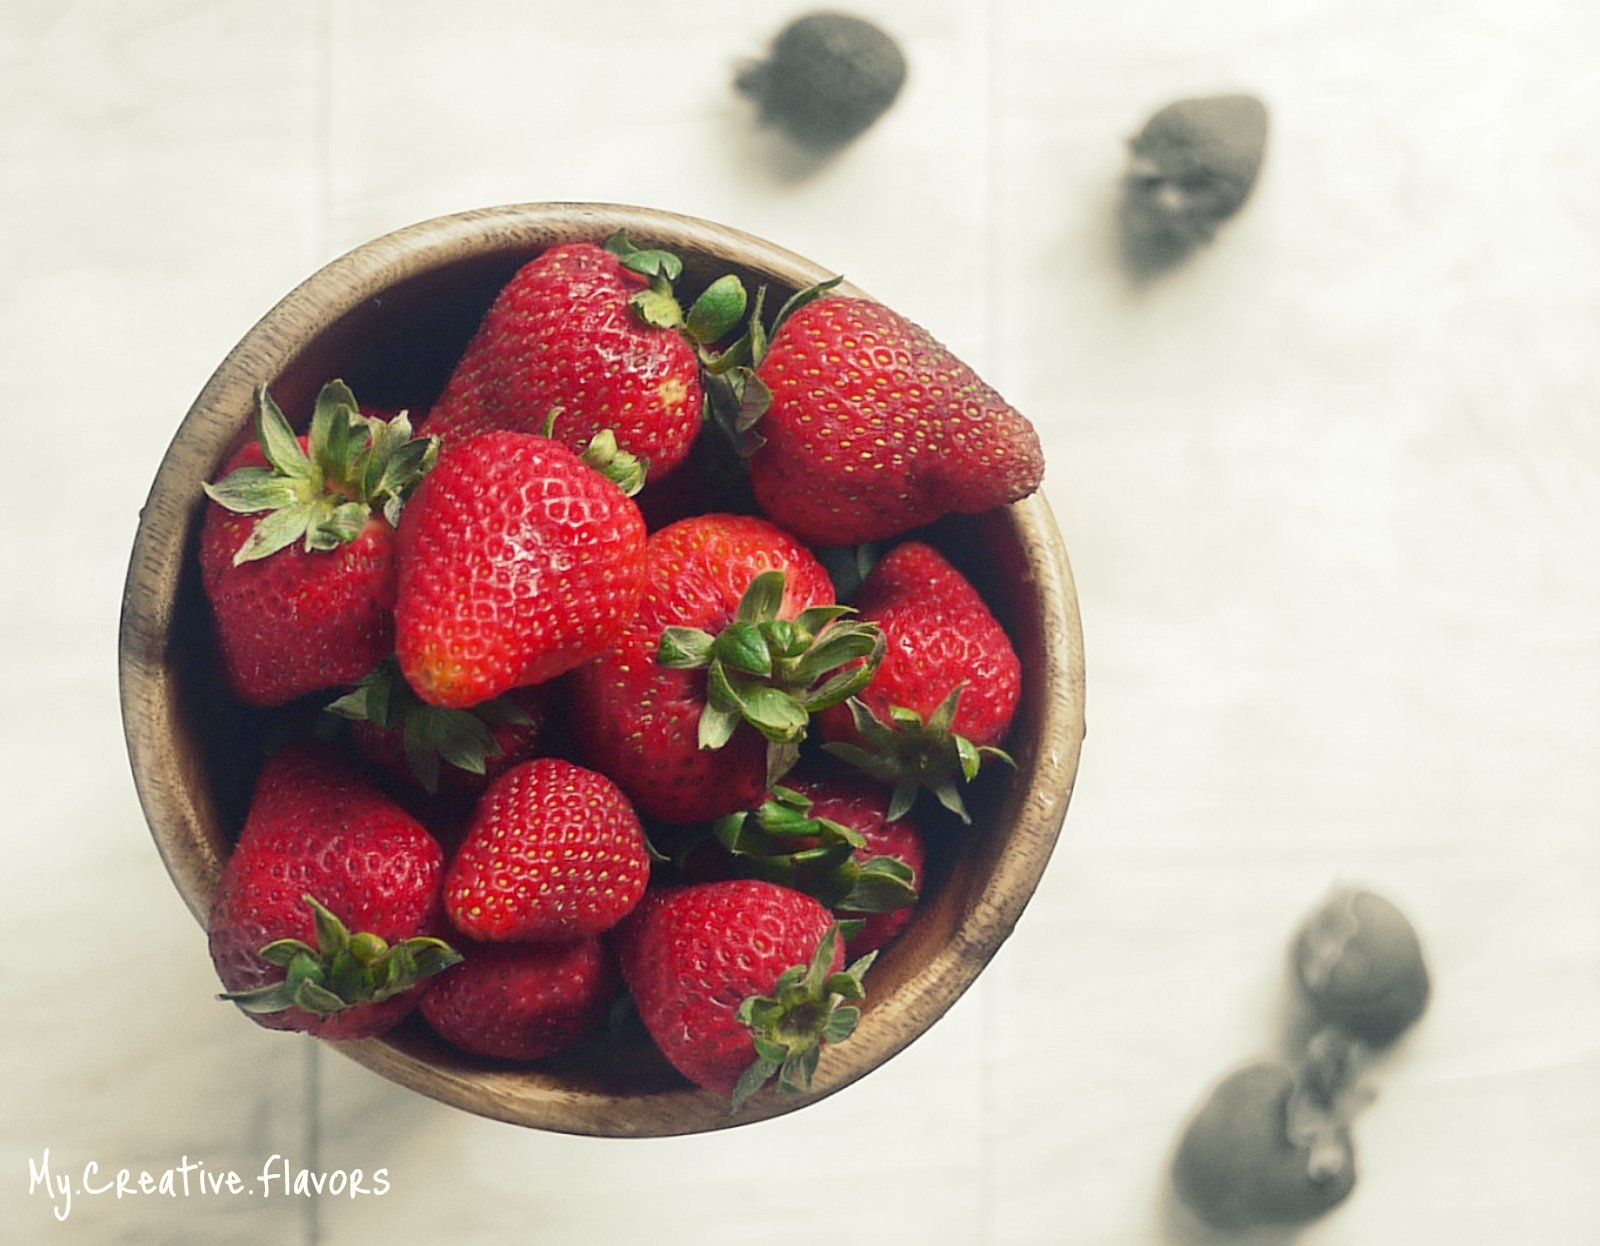 My Creative Flavors: Berry Bounty, So here is Strawberry ...